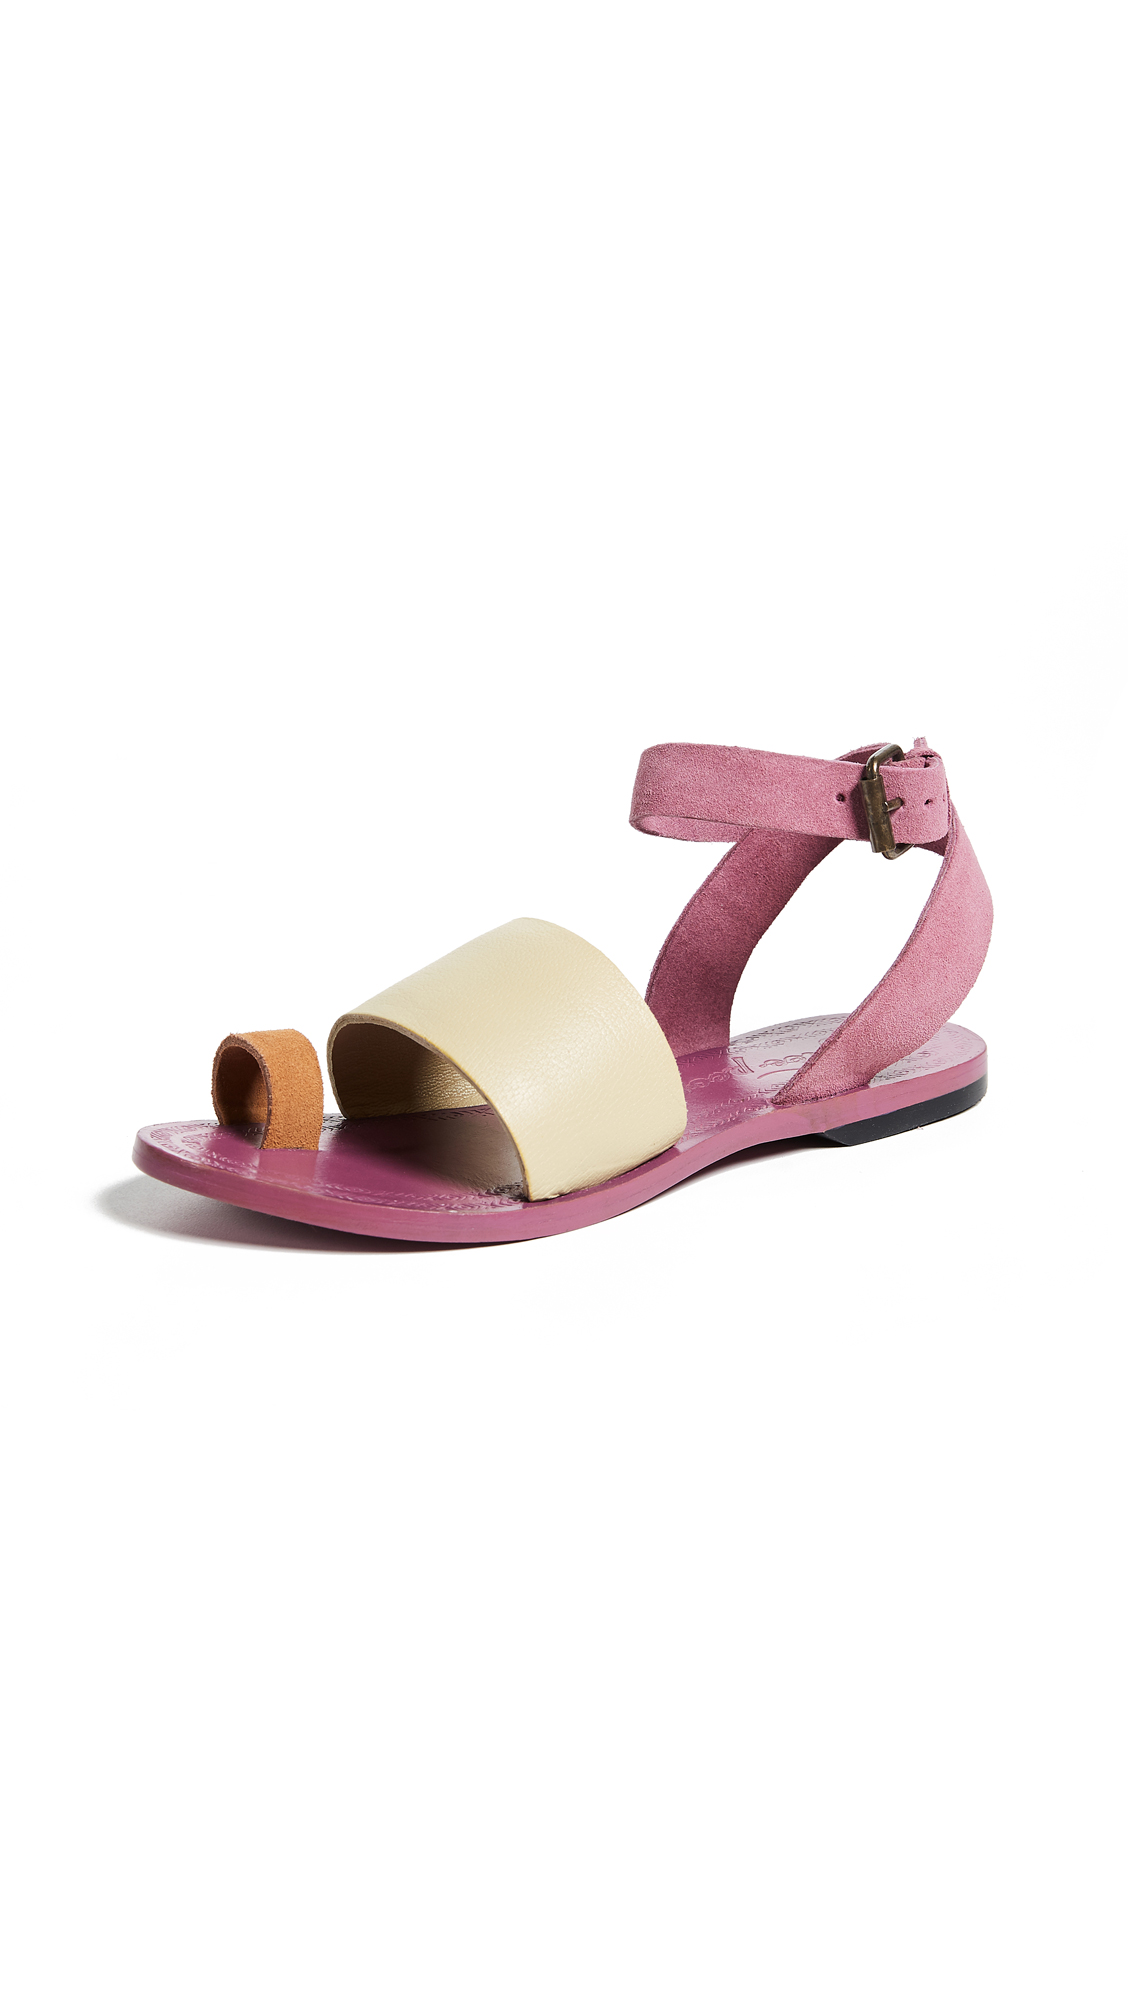 Free People Torrence Flat Sandals - Pink Combo